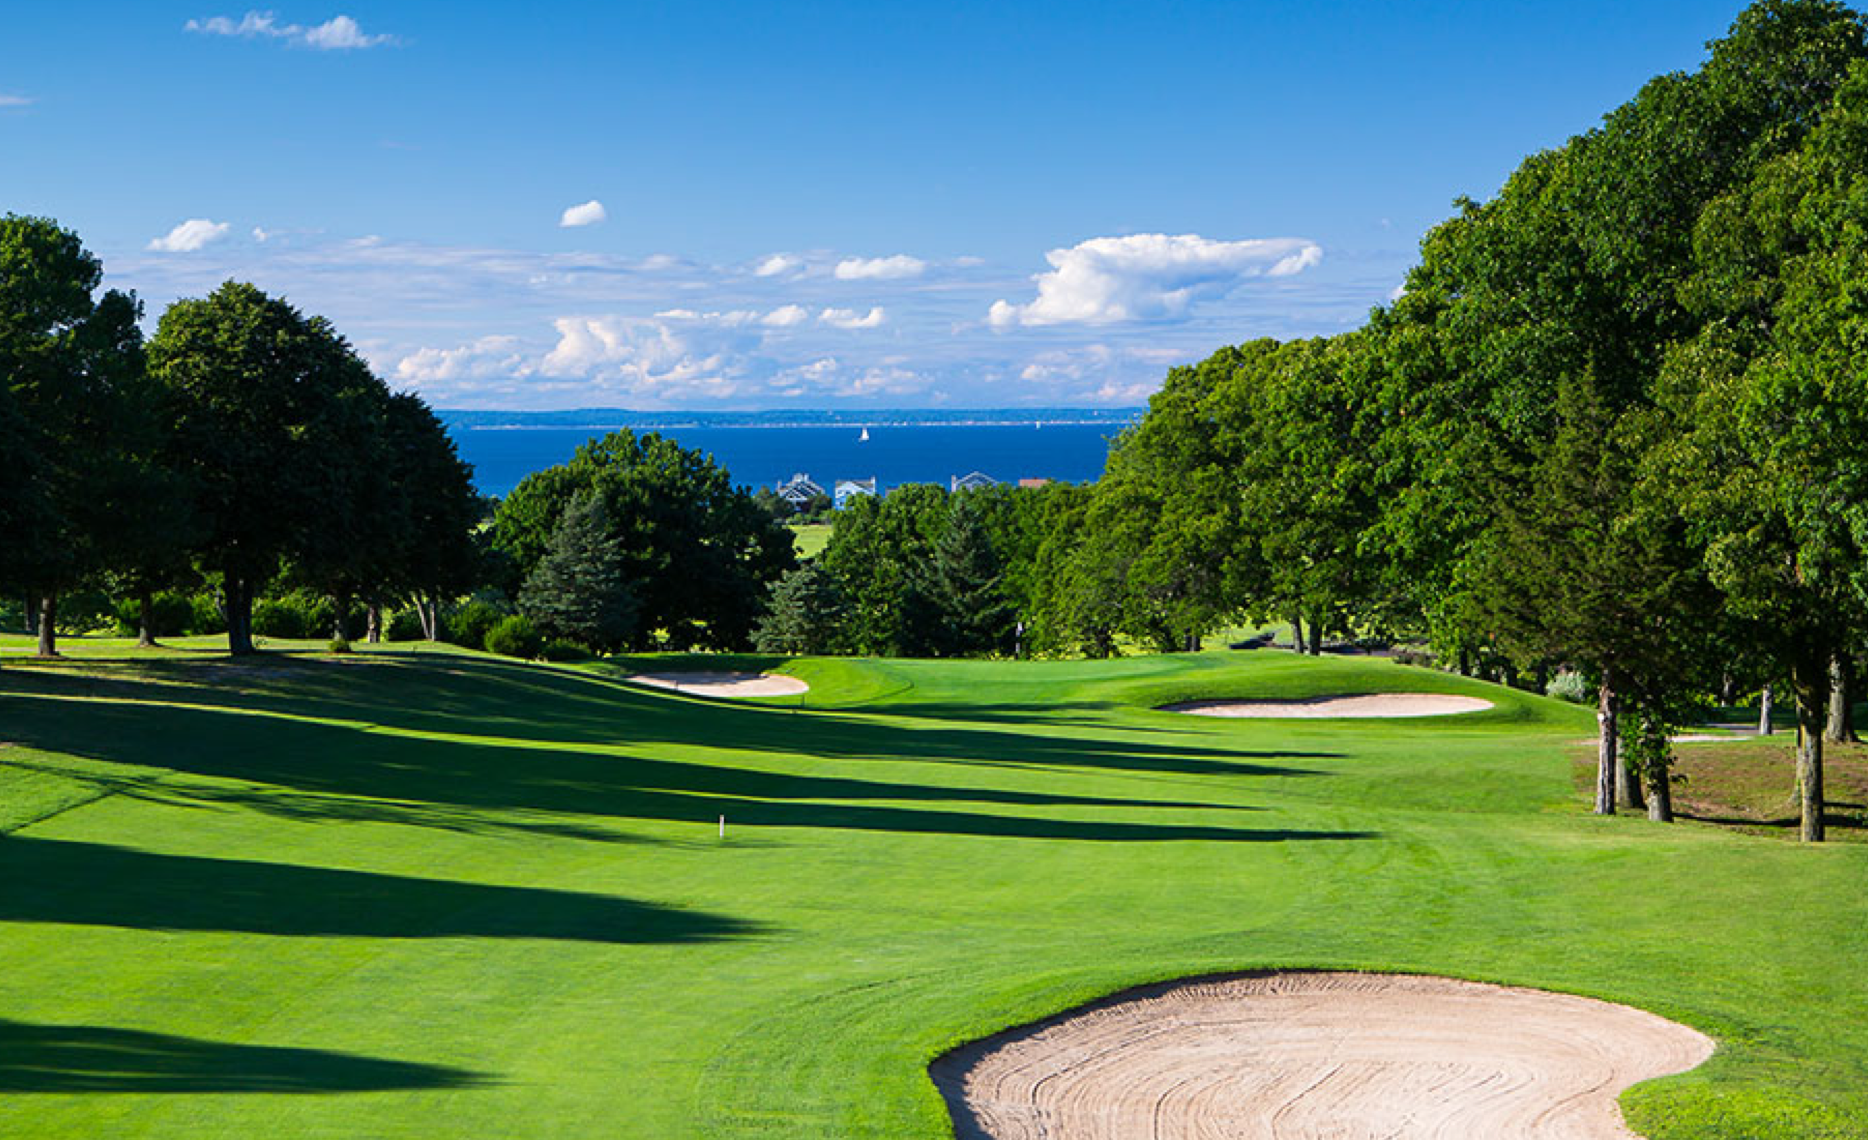 Enjoy views of the Long Island Sound during your round at Crab Meadow in Northport, New York.